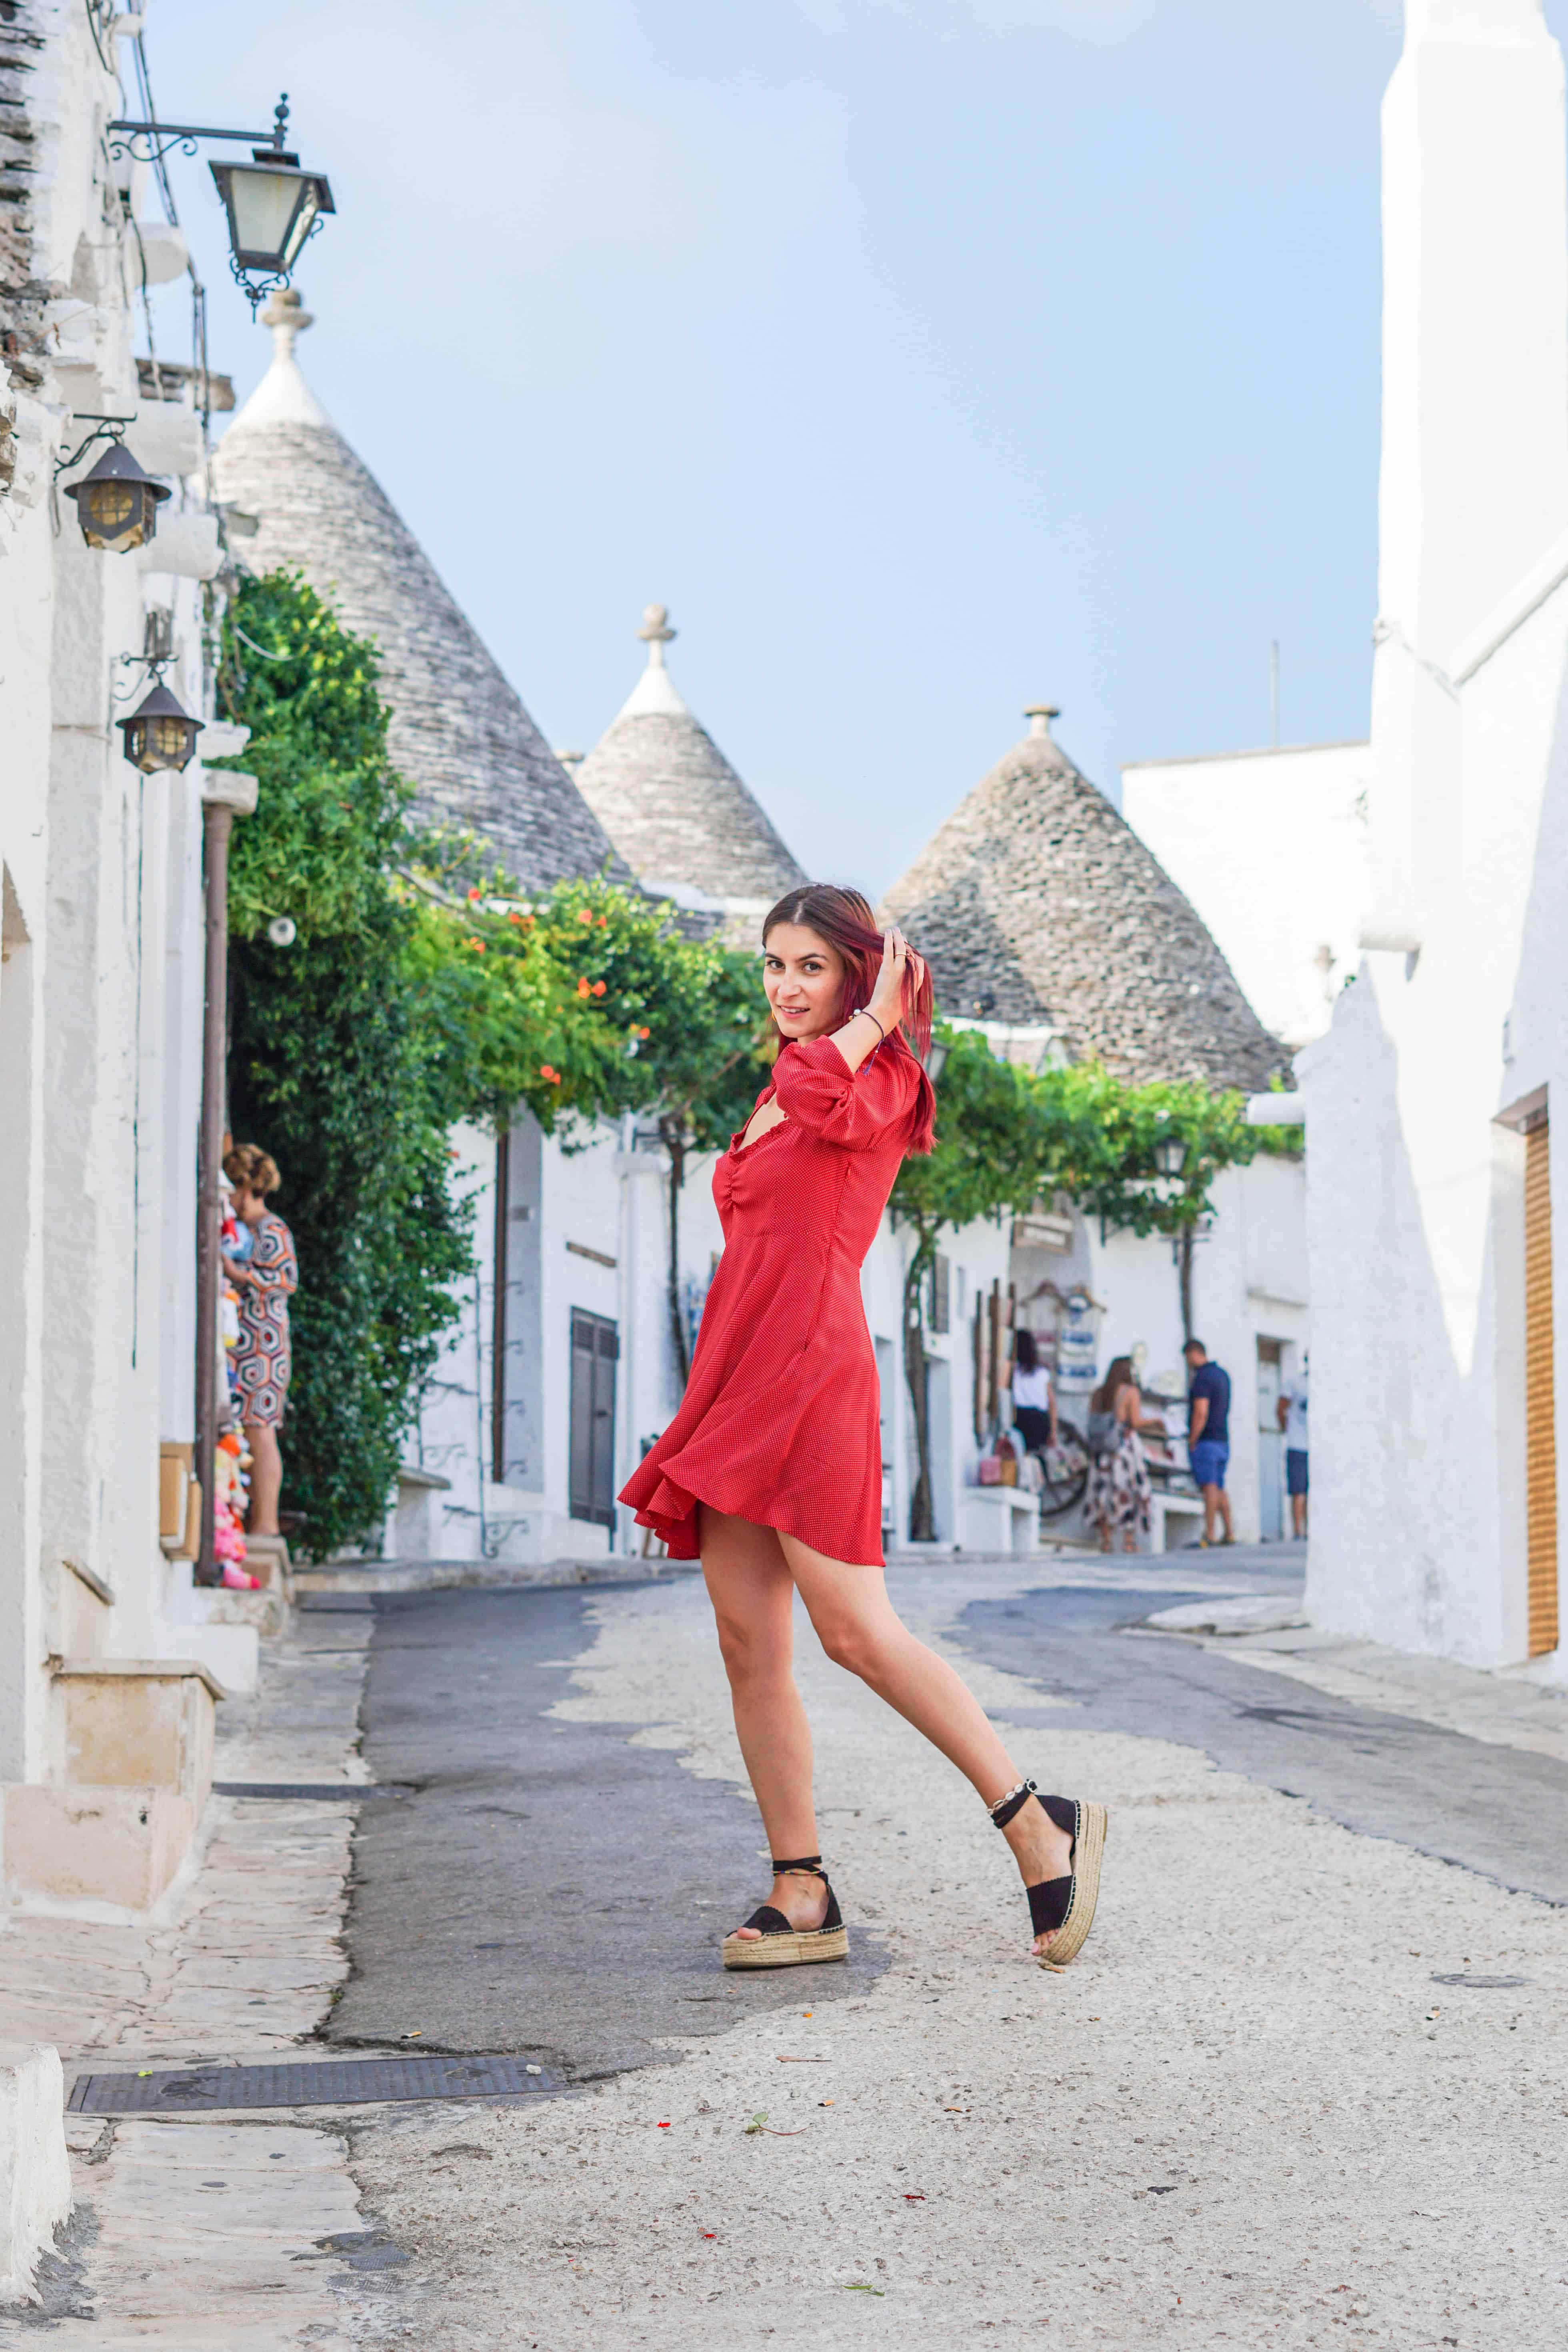 Hidden places in Italy: 4 days in Puglia. Discover one of the most beautiful places in Italy and embark on an Italy vacation you will never forget, without your usual tourist crowds. Read why you should put Puglia on your Italy travel destinations list, and read your perfect Puglia Italy itinerary. Cute outfits for Summer & Italy travel outfits#puglia #italy #travel #itinerary